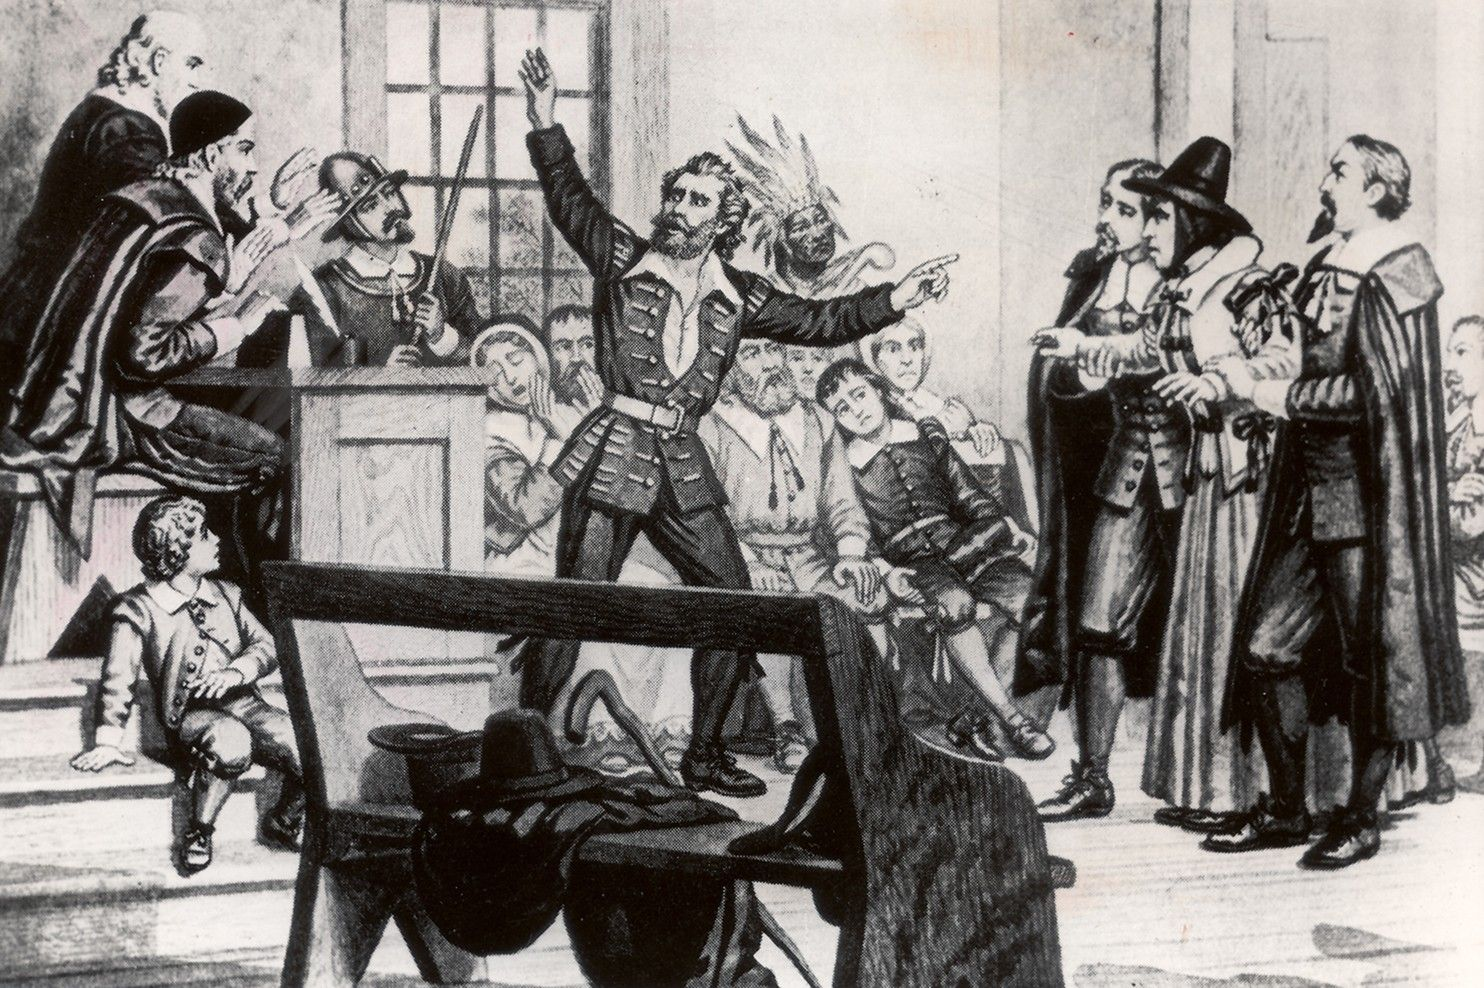 Salem Witch Trials Execution Site Found, And It's Behind A Walgreens